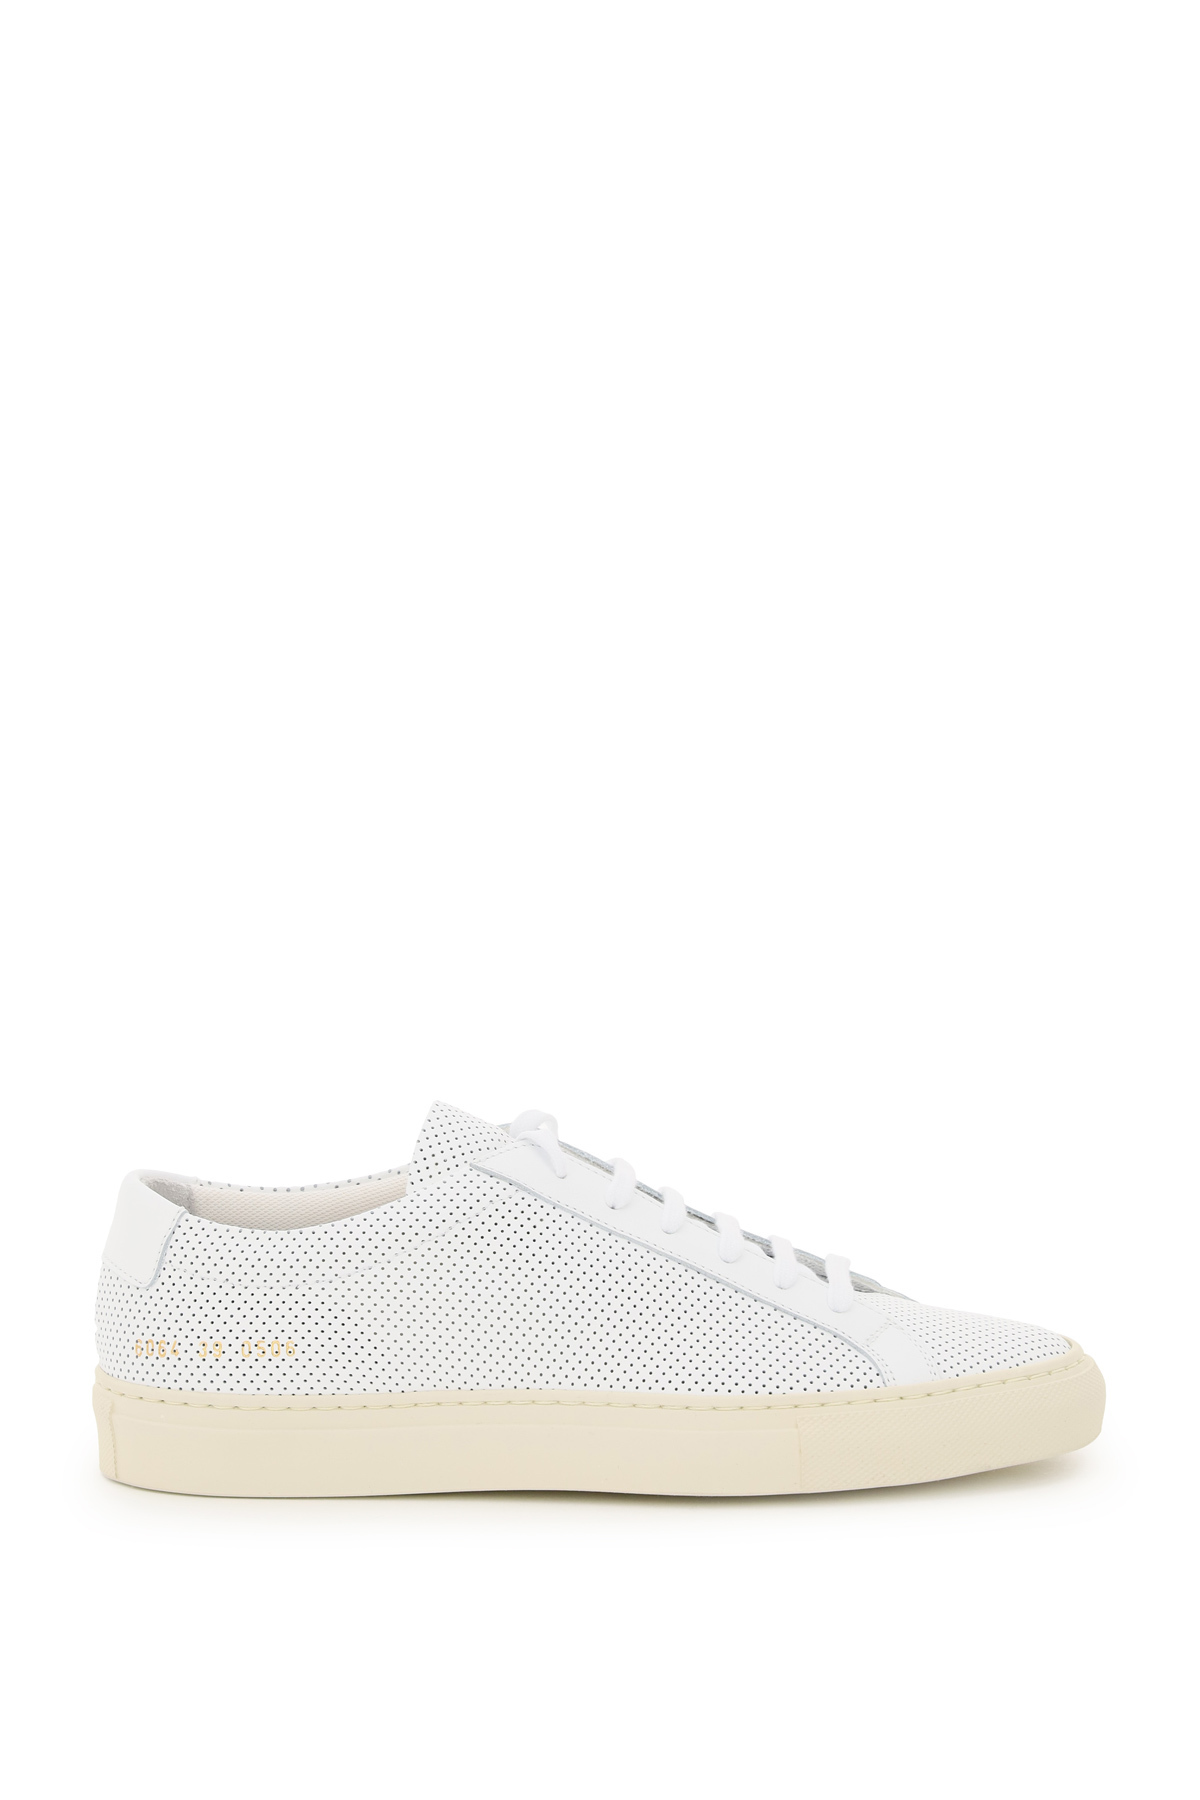 Common projects sneaker in pelle achilles low perforated